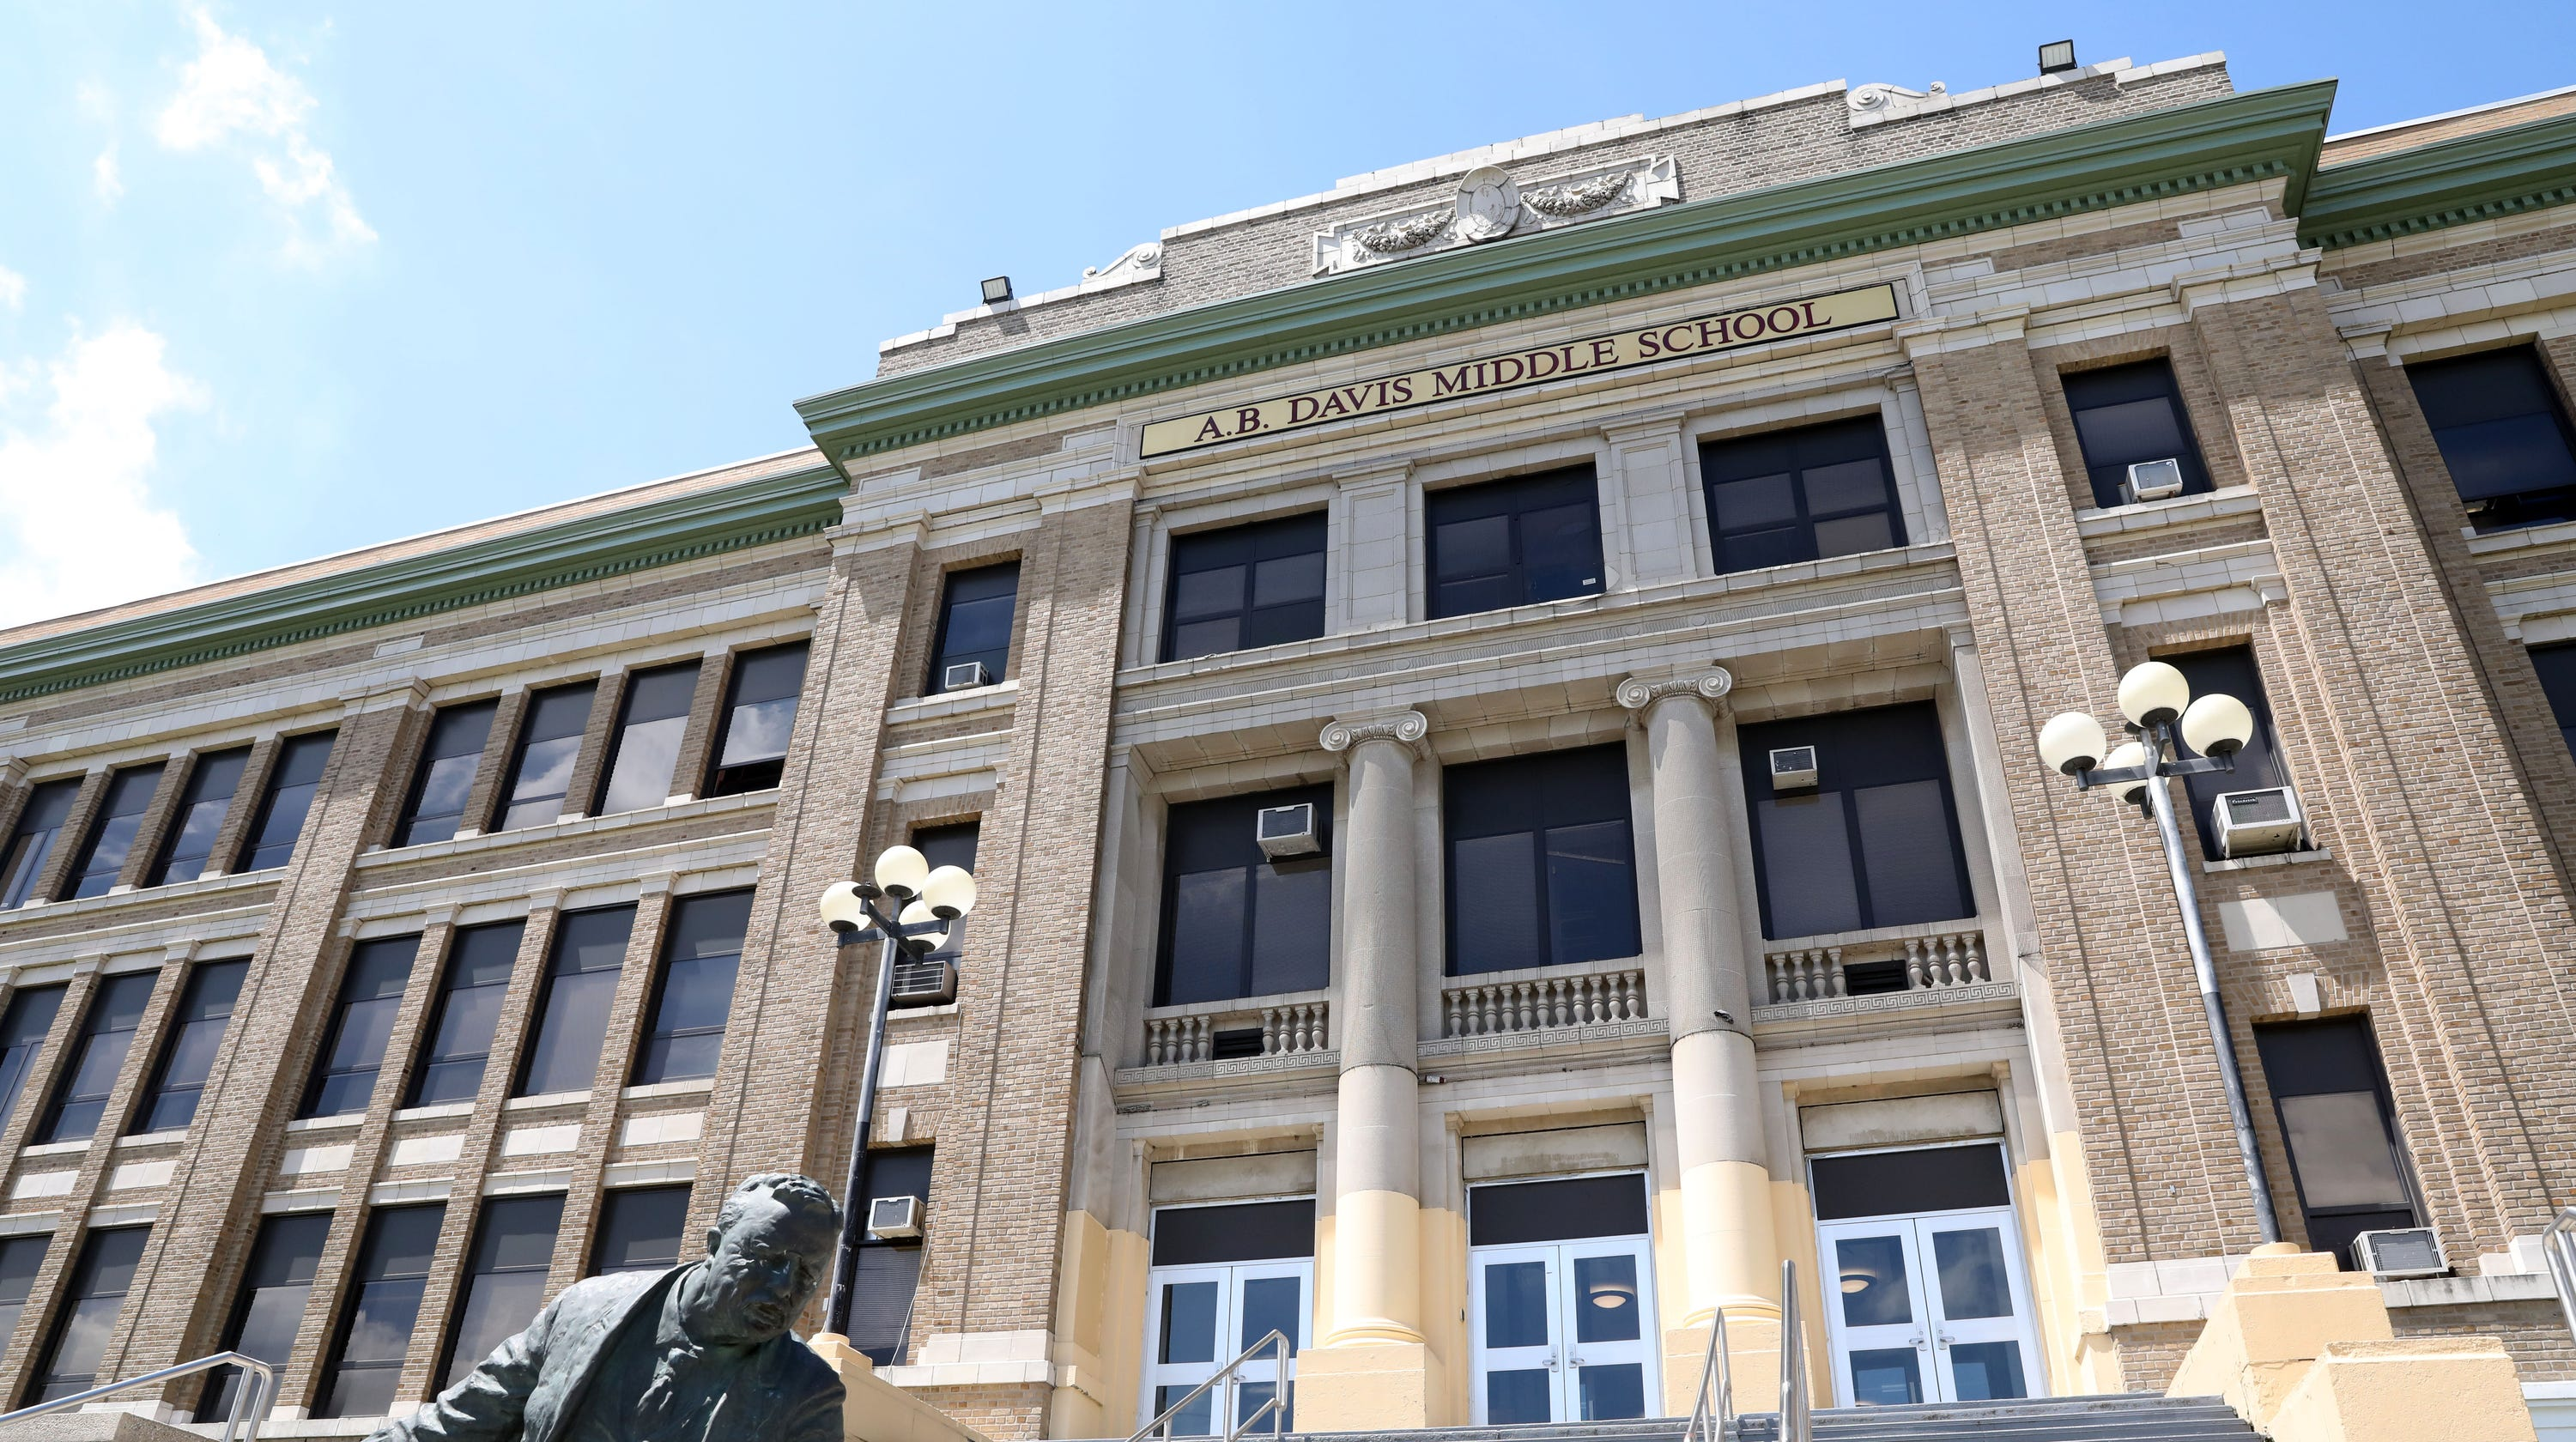 Guide to Mount Vernon's new high schools starting, in September